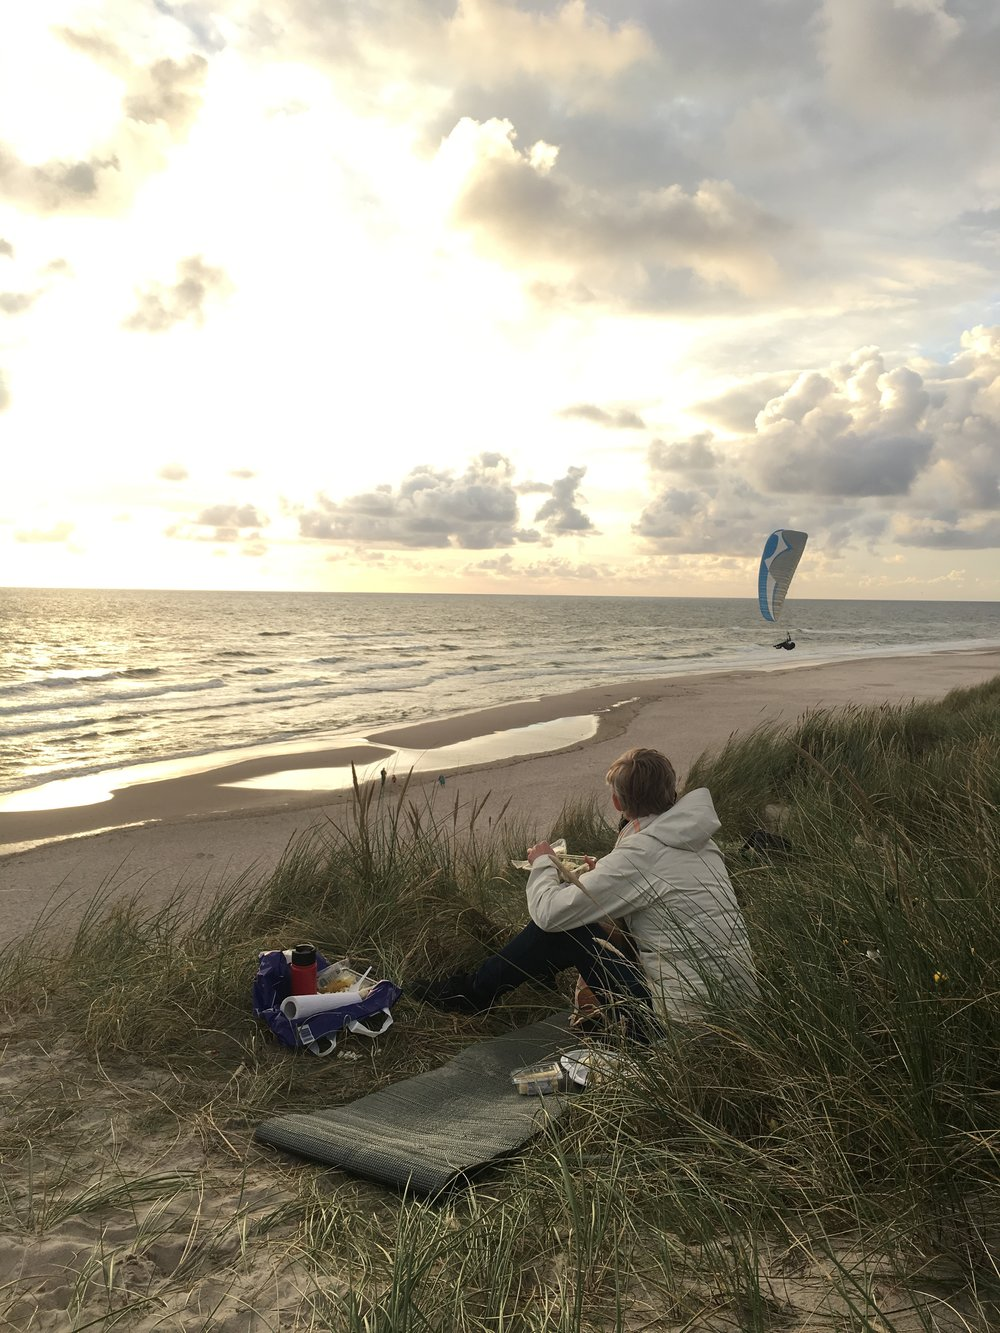 Sunset picnic on the shore of the North Sea.